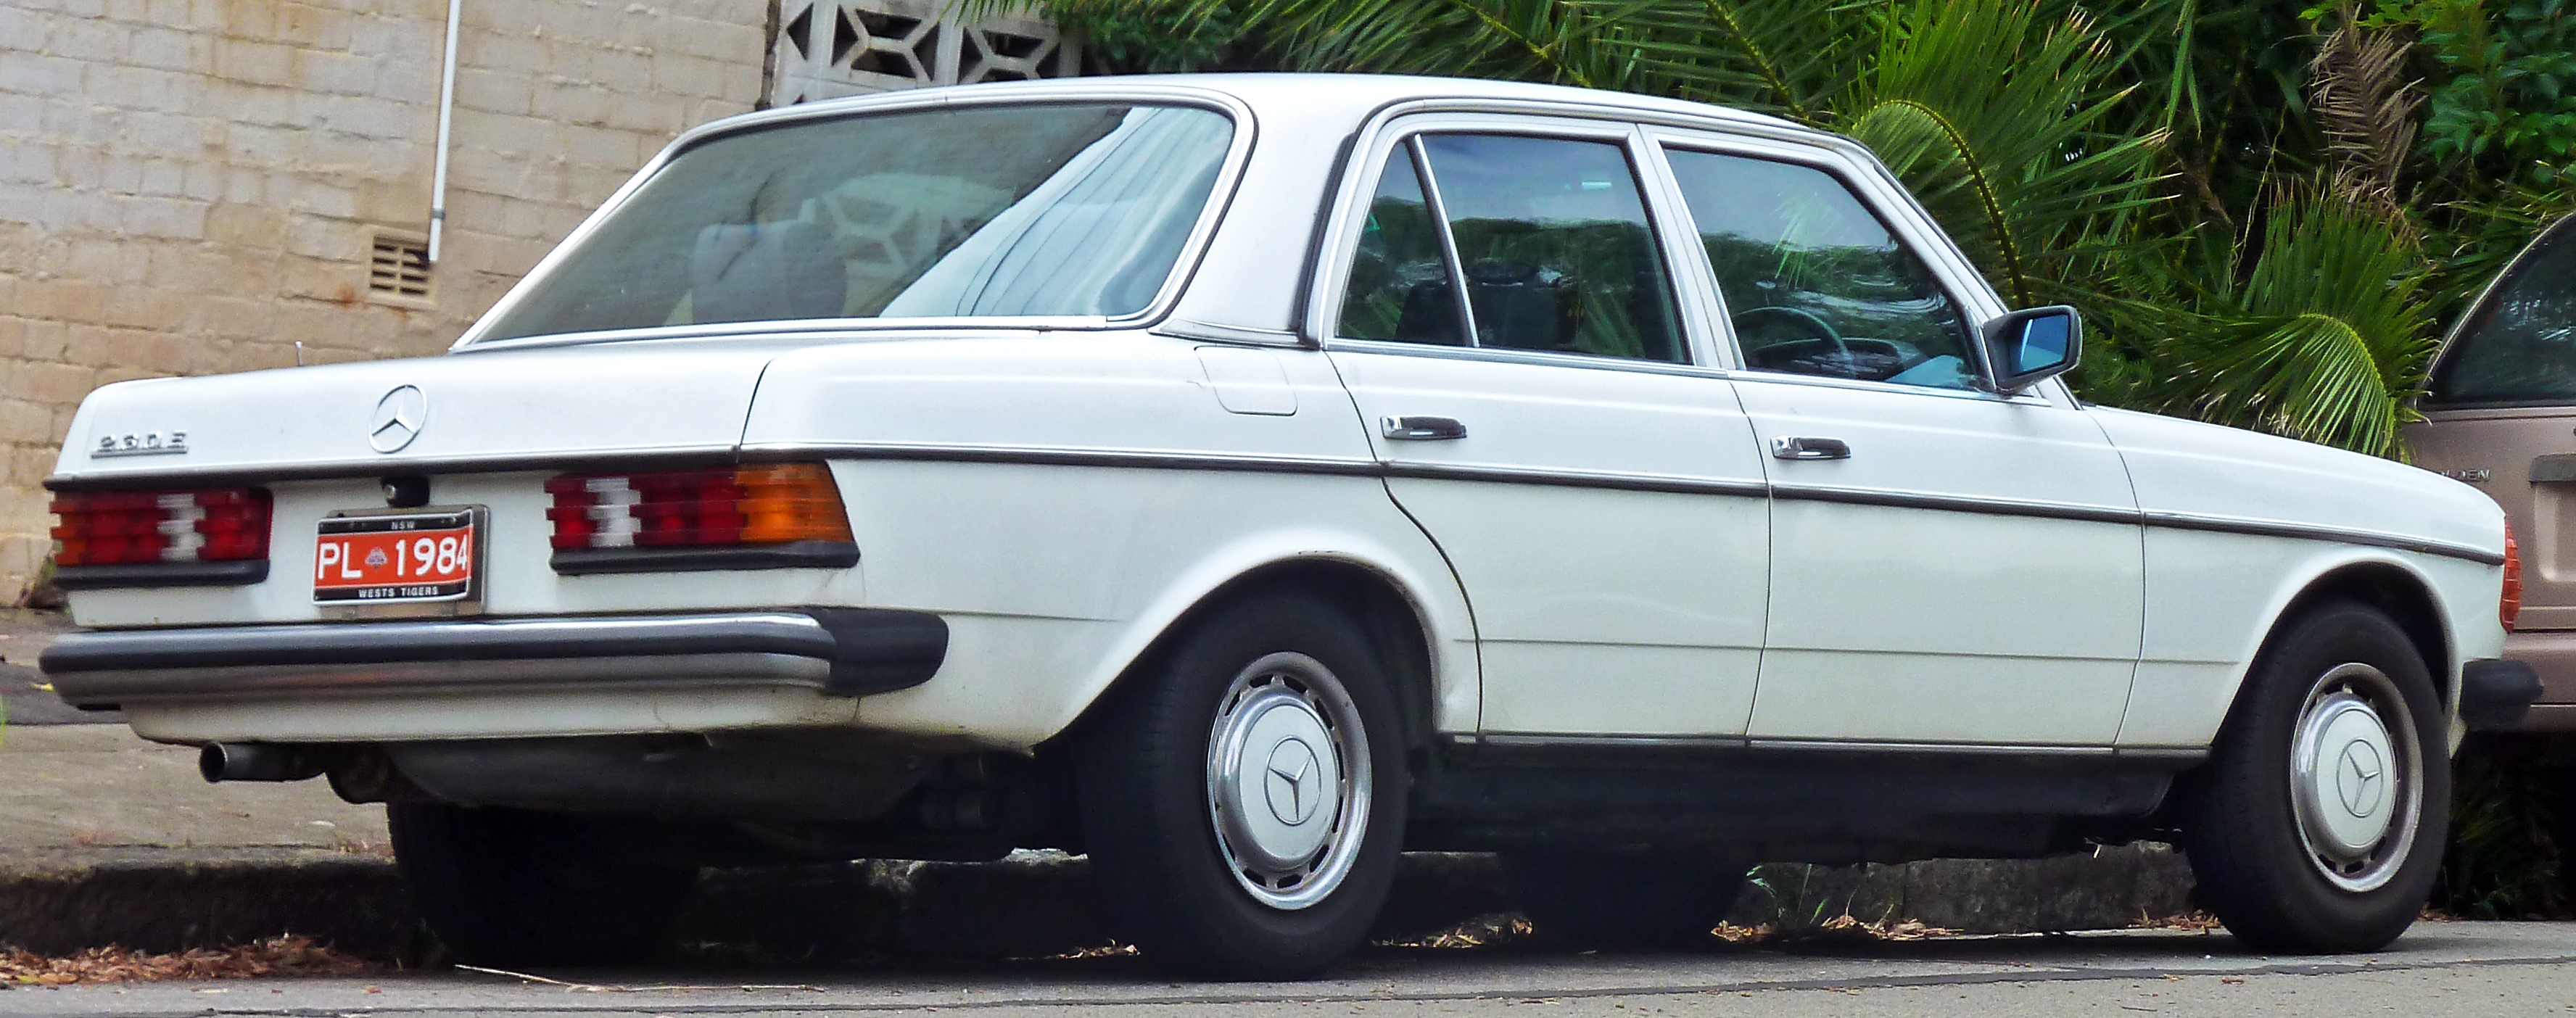 Mercedes-benz sedan photo - 4